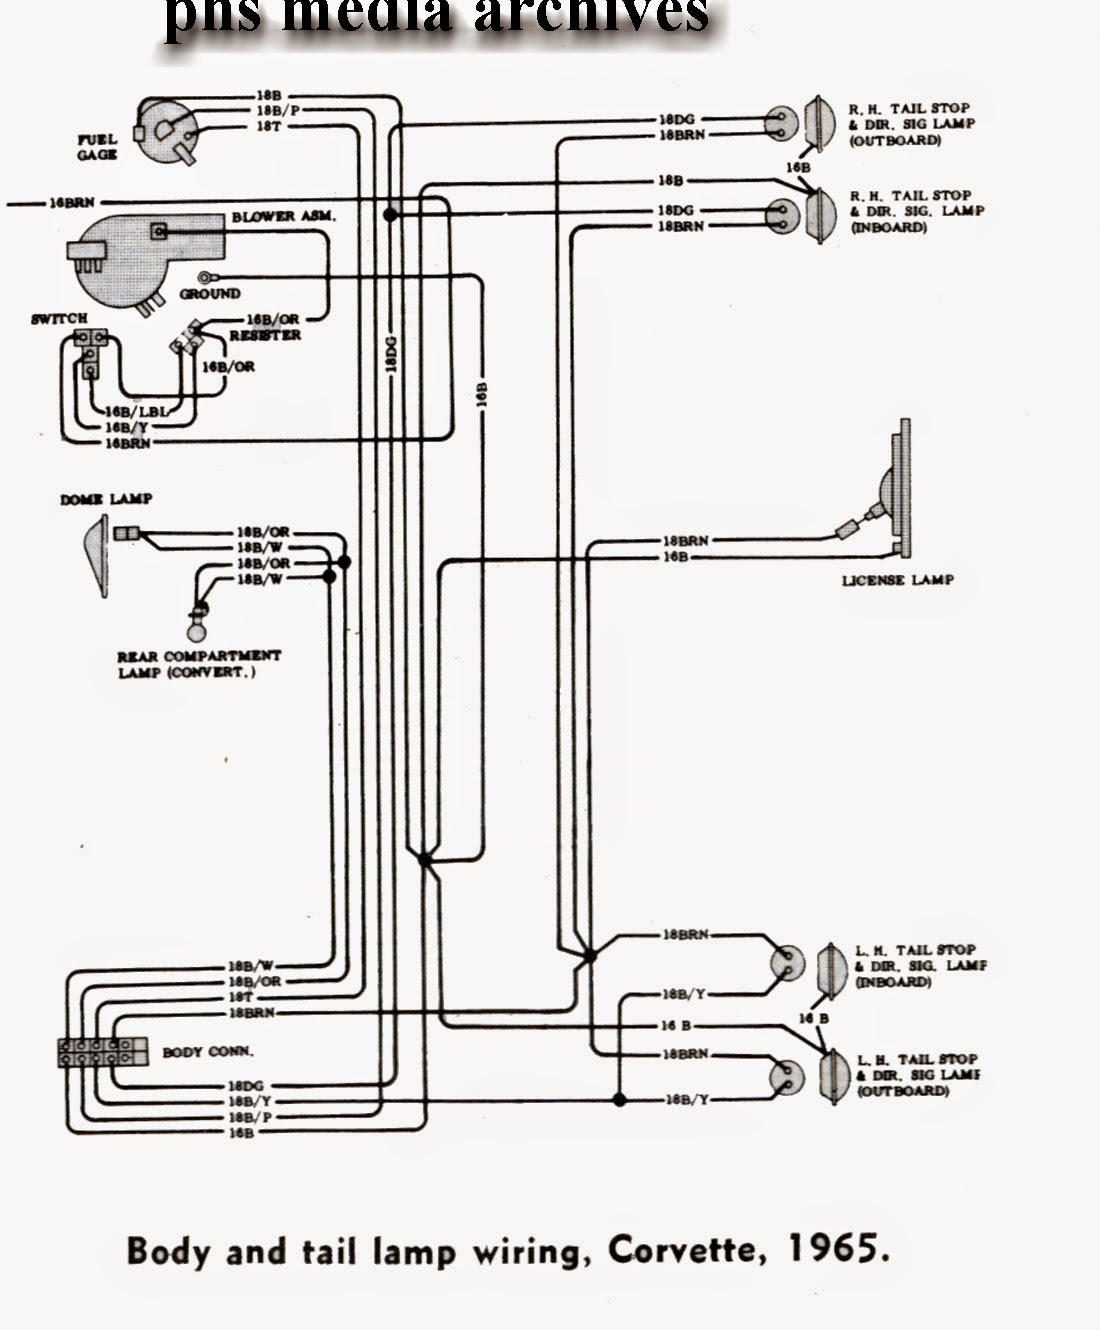 Tech Series 1965 Chevrolet Corvette Wiring Diagrams Engine Fuse 1960 Pontiac Catalina Click On Image For Larger Detail